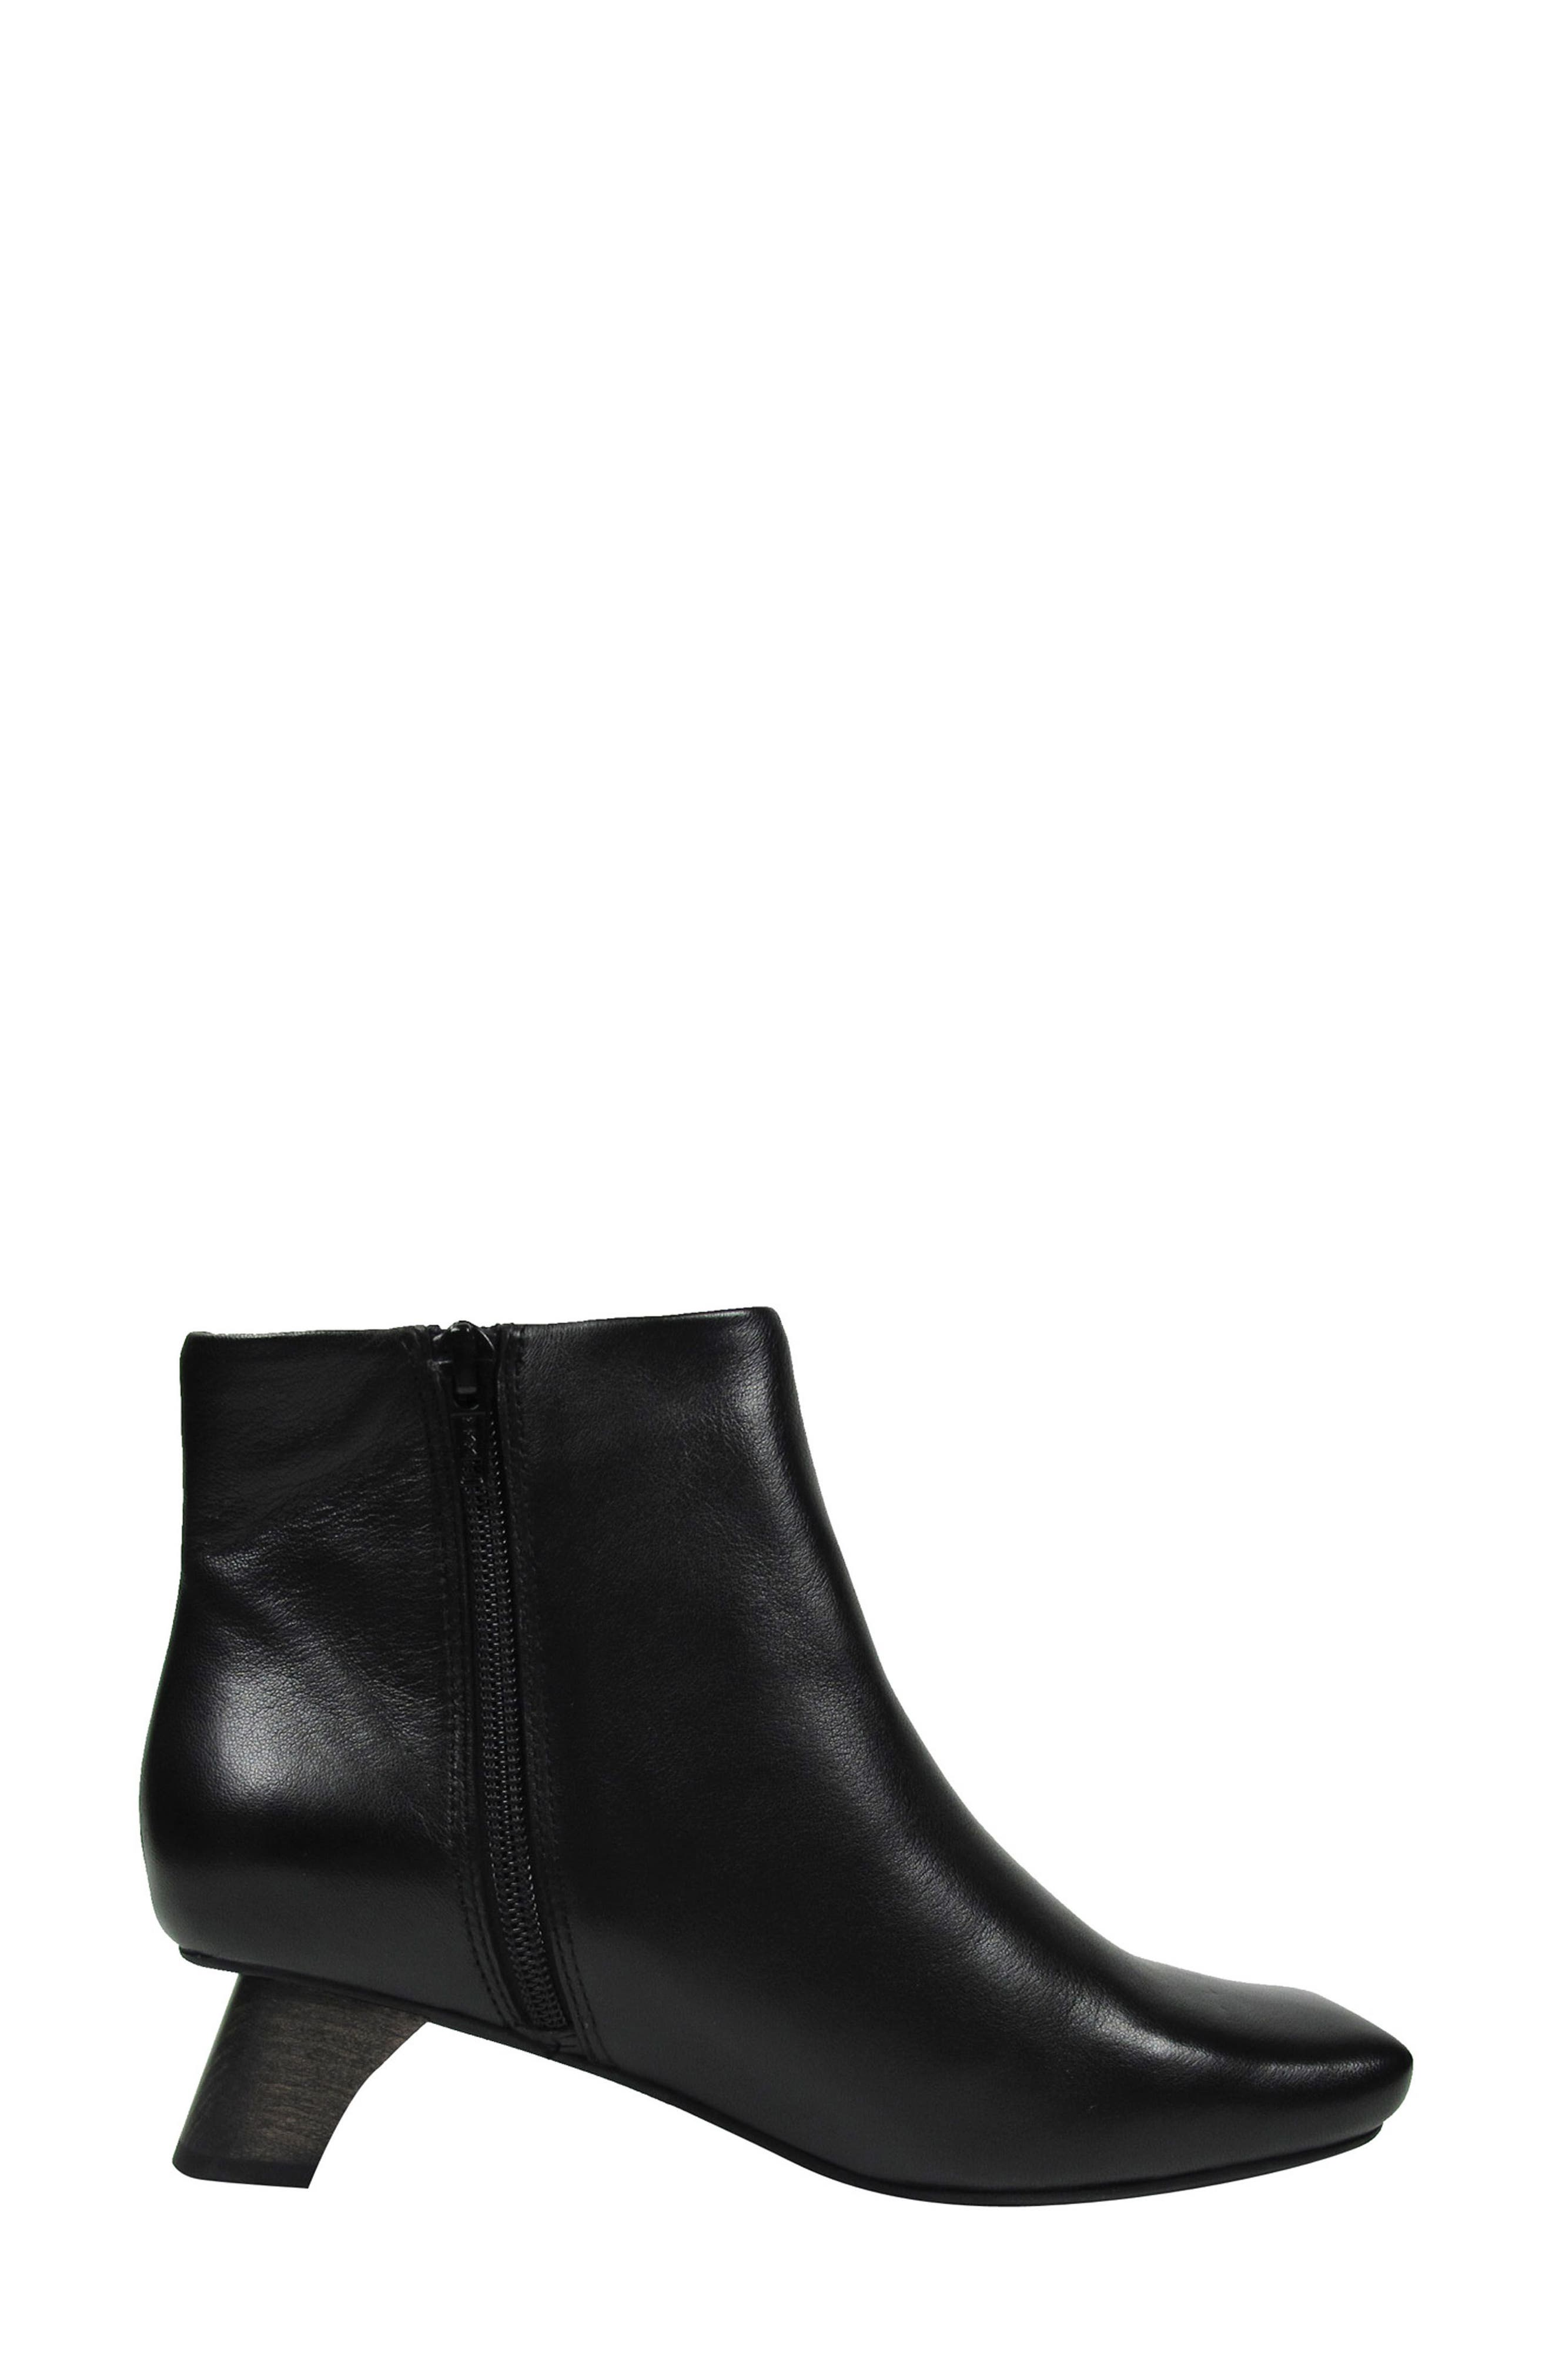 Willomina Bootie,                         Main,                         color, Black Leather